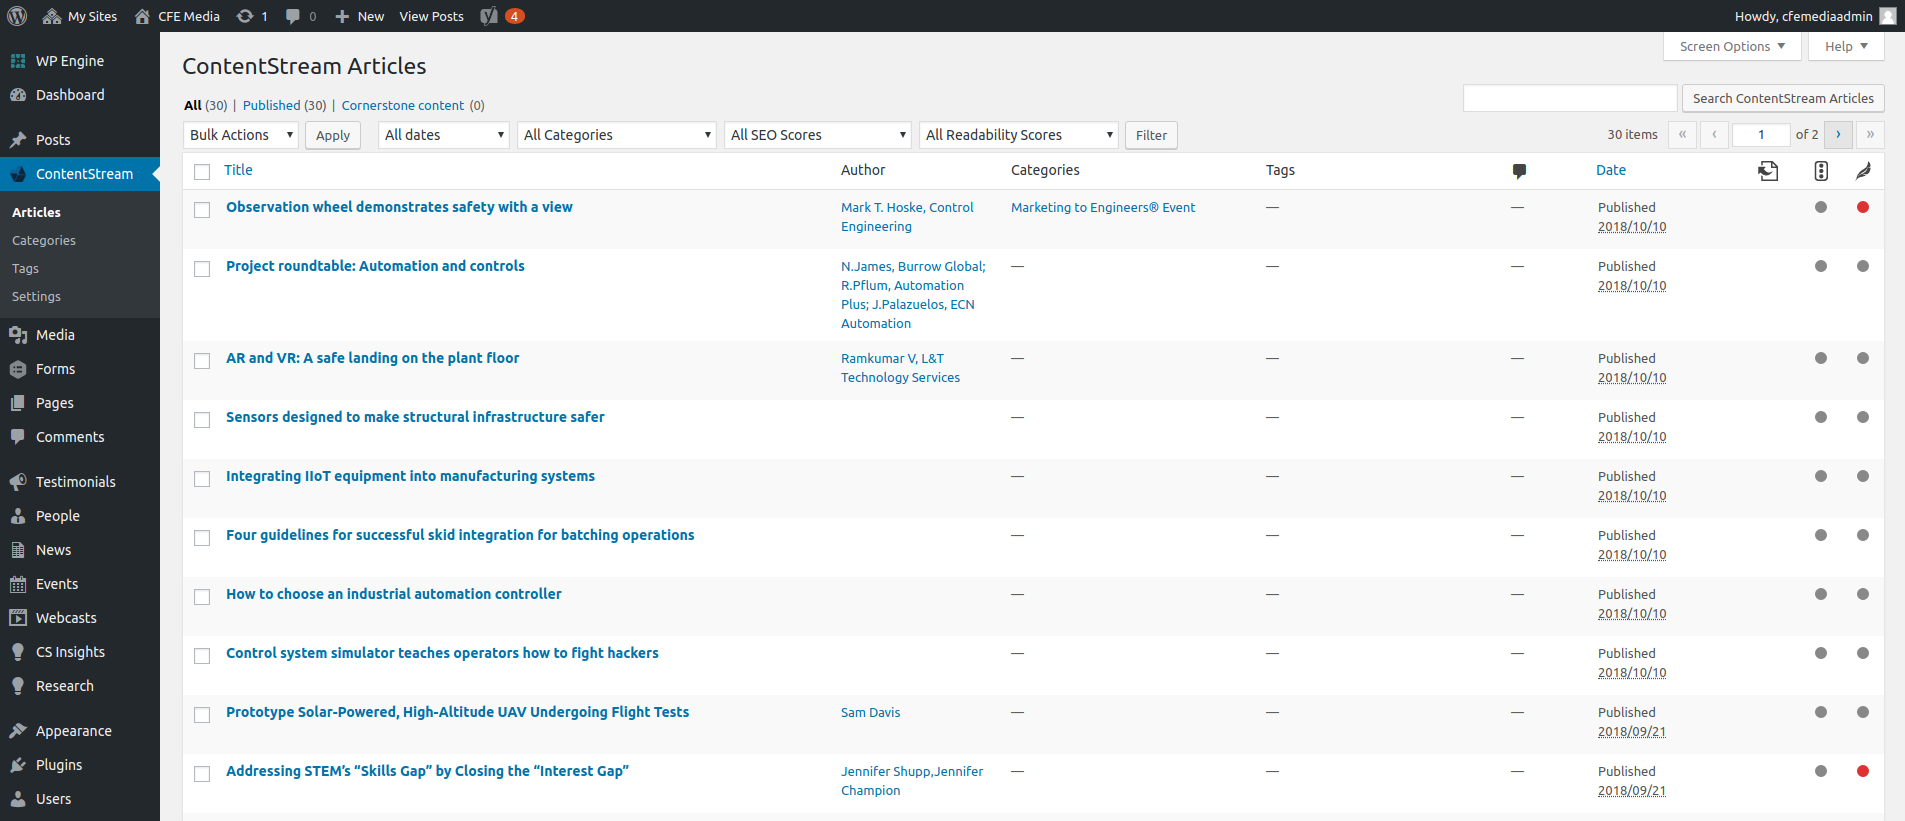 Viewing the articles downloaded by the plugin